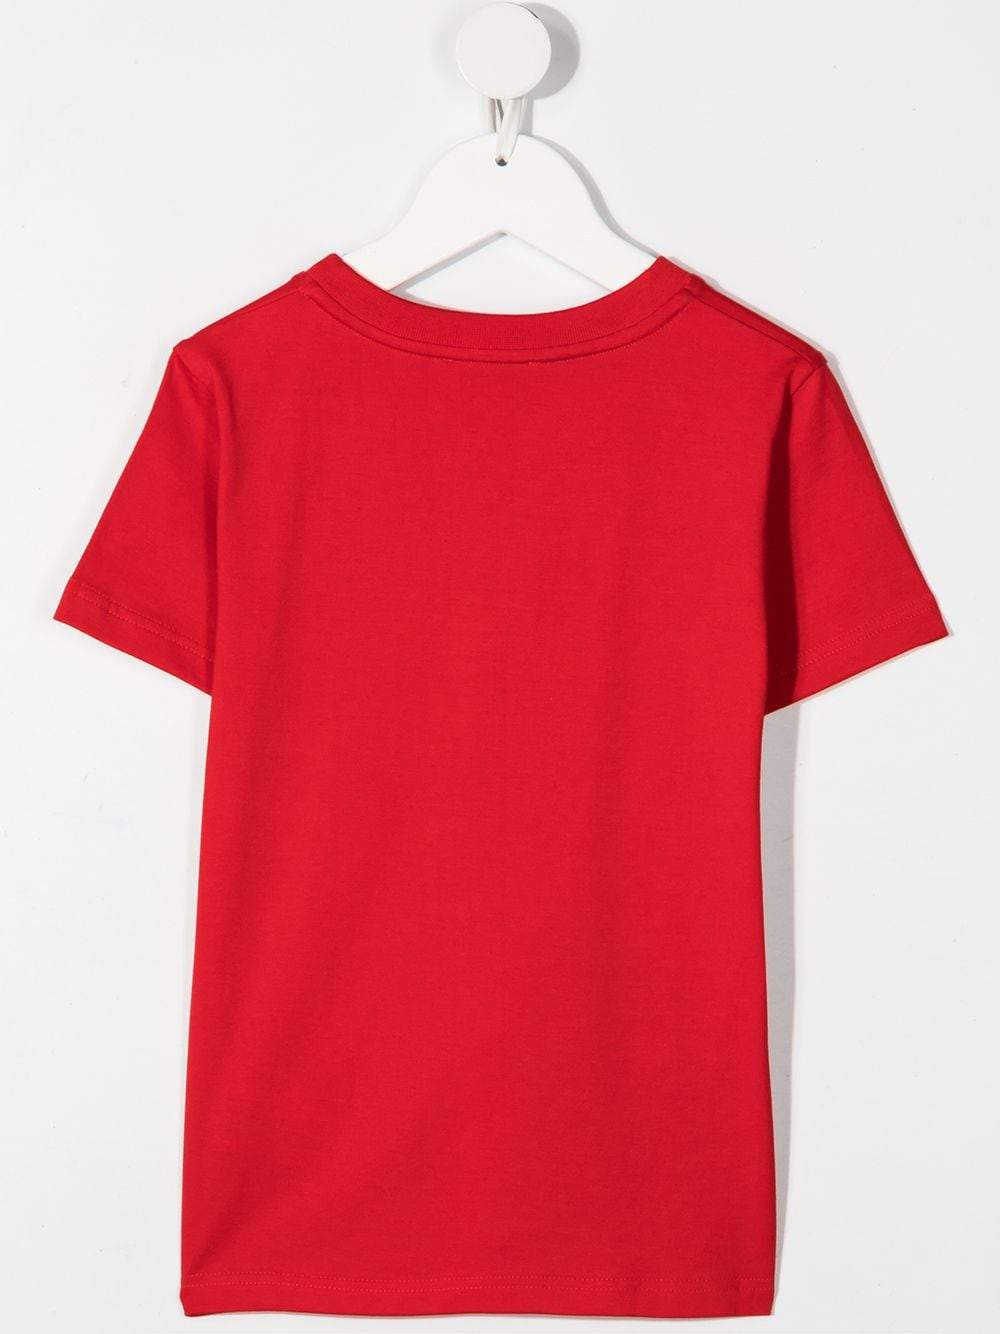 GIVENCHY KIDS Graphic logo print T-shirt Red